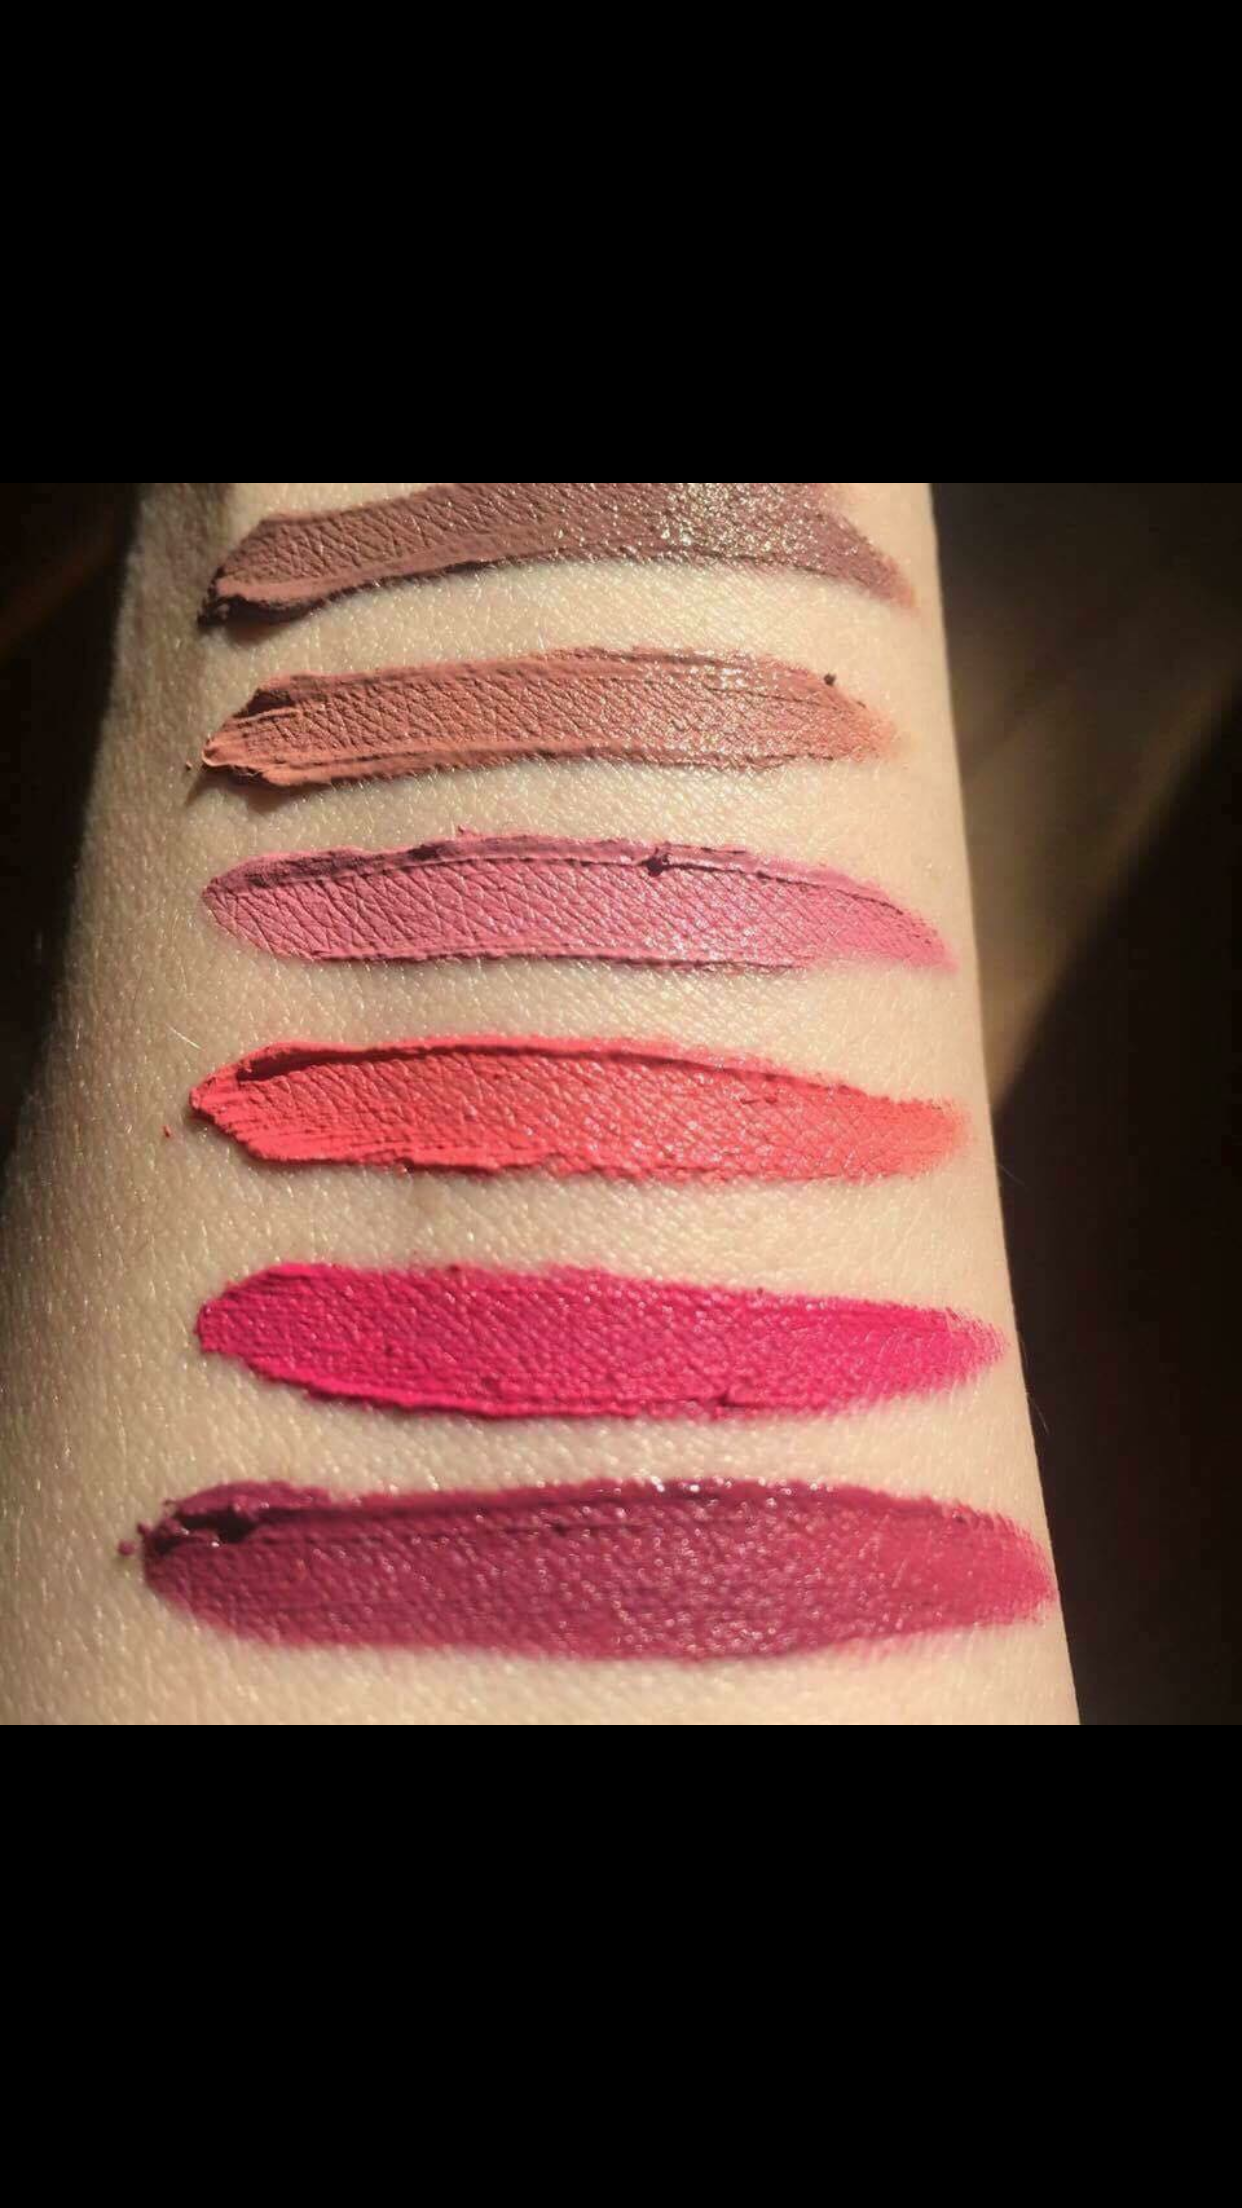 June kudos New Younique splash matte liquid lipstick shades!  Sublime, stellar, sumptuous, susceptible, superb, stately. Gorgeous nudes and summer shades www.BeautyByShell.com